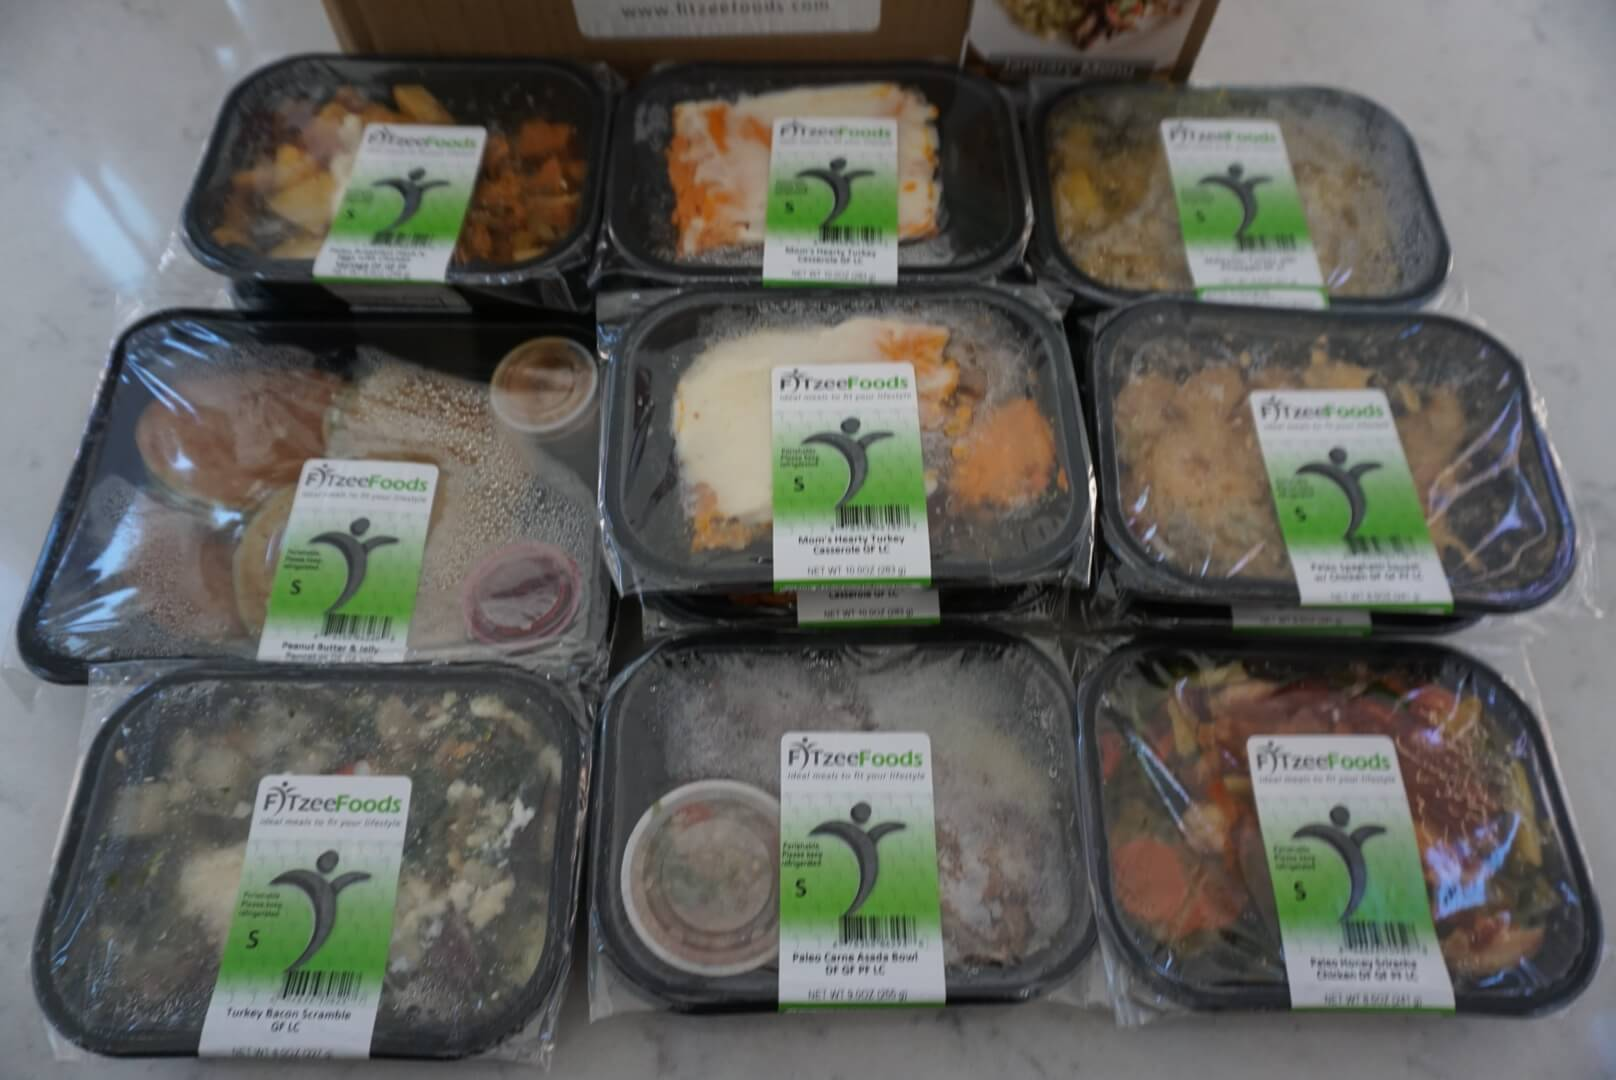 How the Fitzee Foods meal delivery meals are packaged.